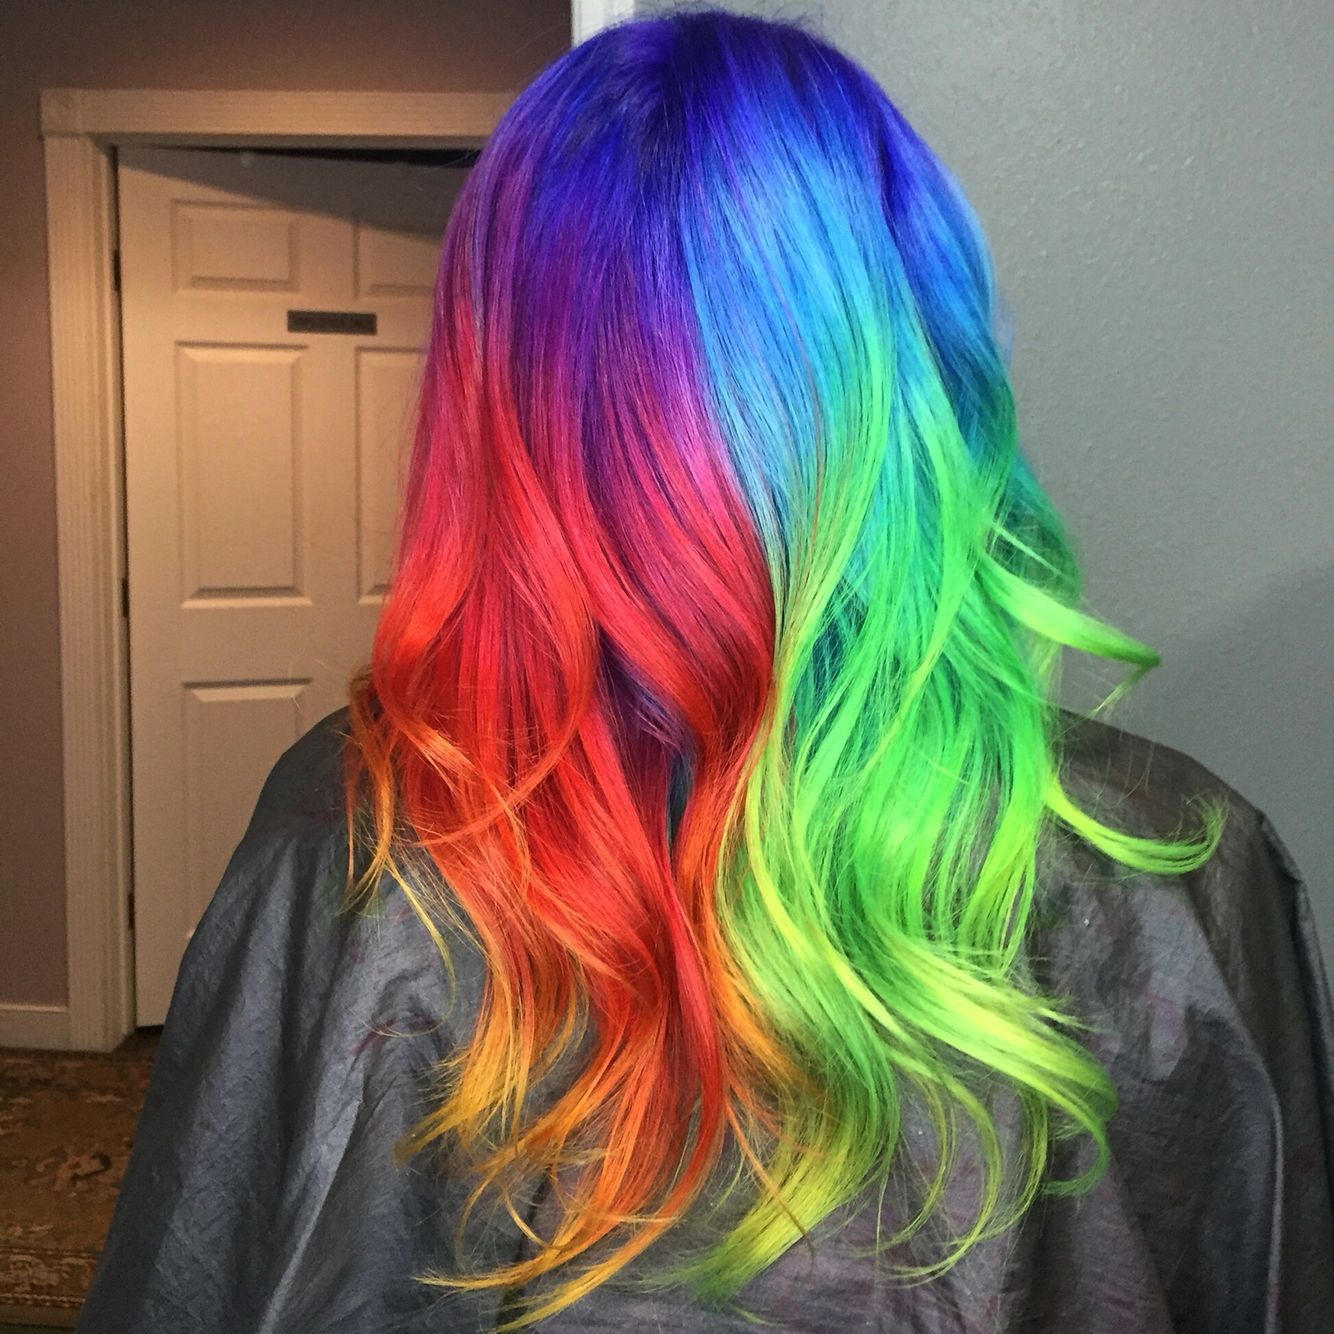 Rainbow half and half hair inspired by guy tang red blue green